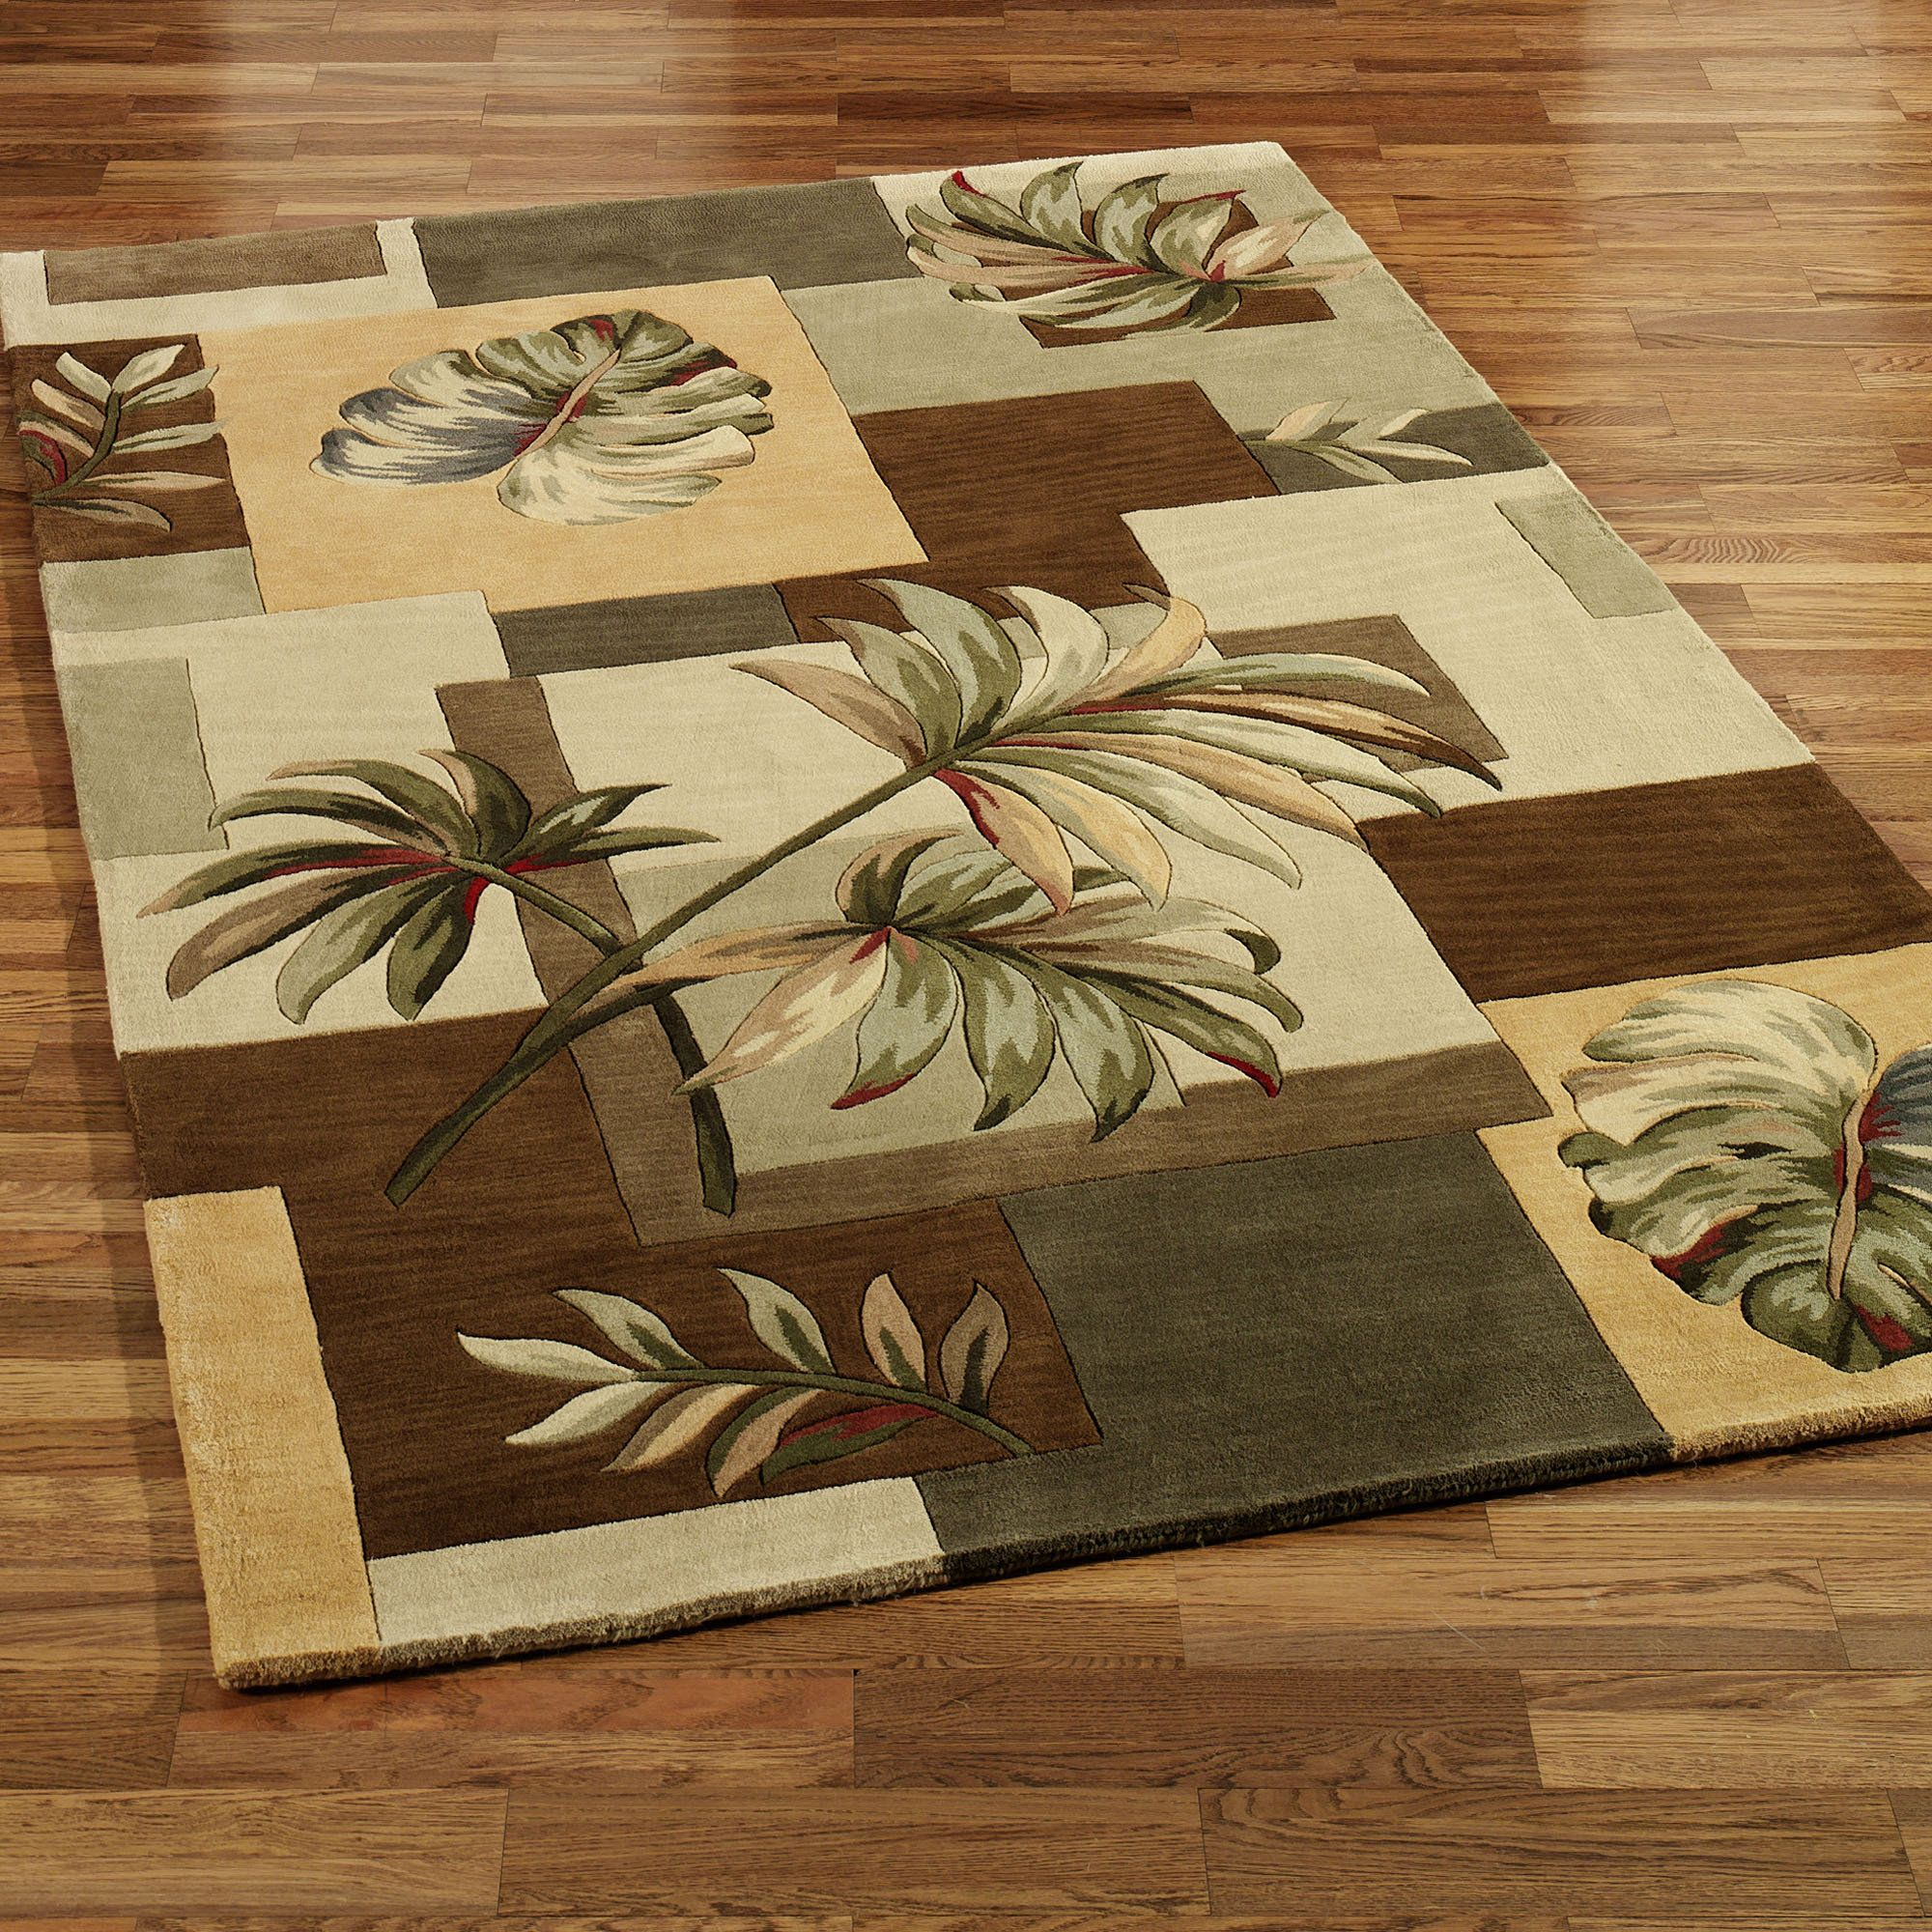 constrain rug rugs tropical qlt redesign slide fit zoom treescape shop hei view anthropologie